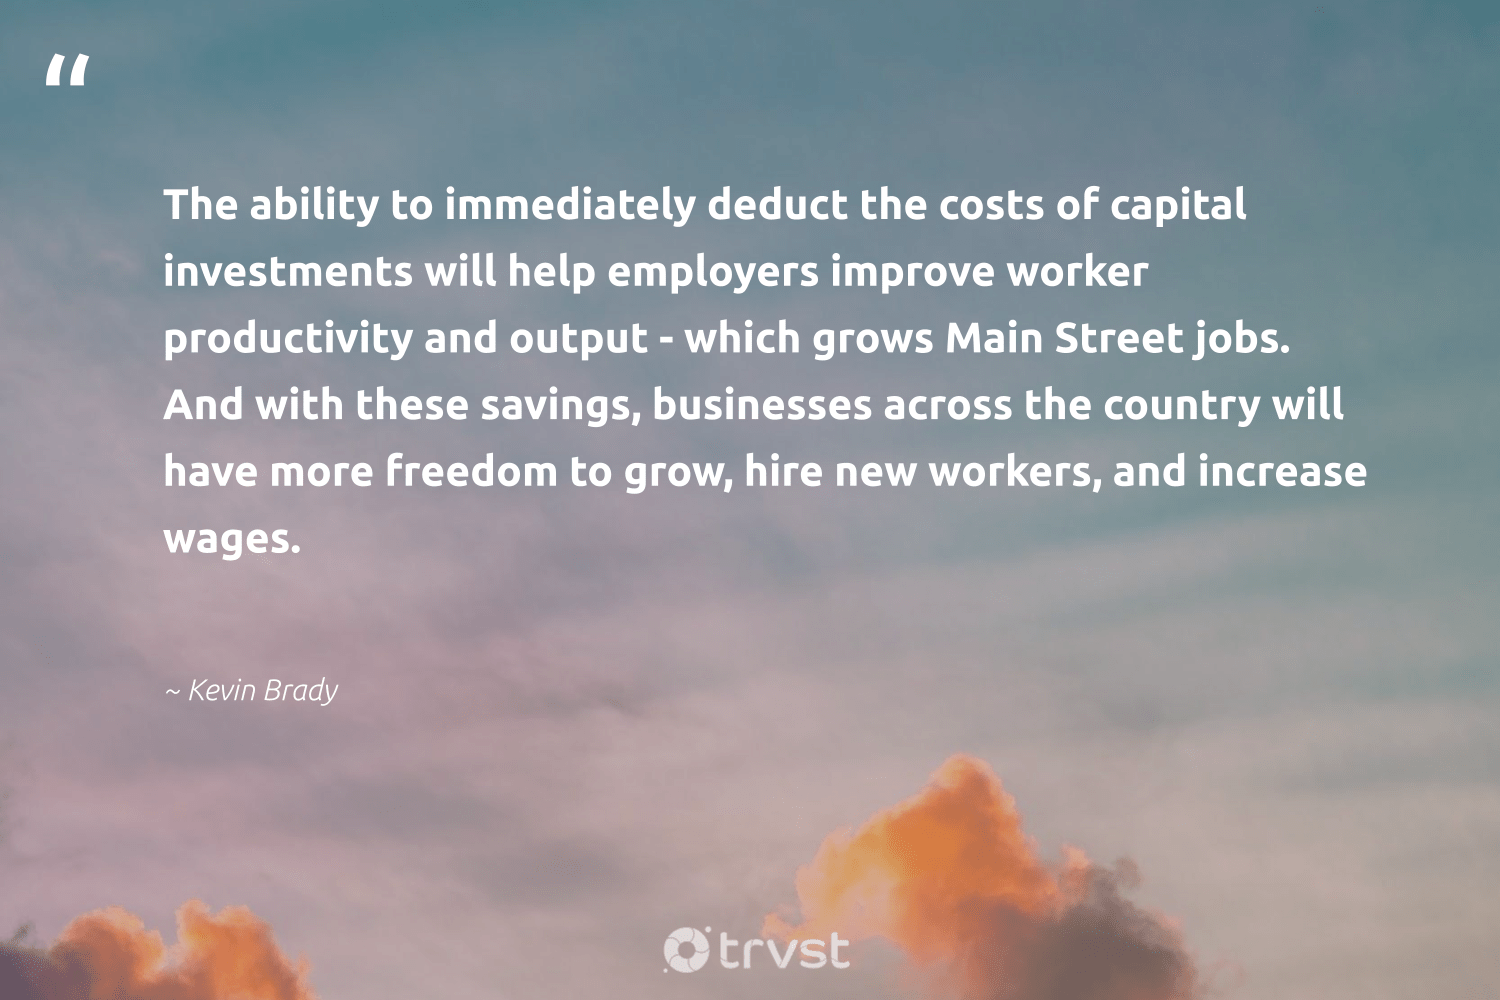 """""""The ability to immediately deduct the costs of capital investments will help employers improve worker productivity and output - which grows Main Street jobs. And with these savings, businesses across the country will have more freedom to grow, hire new workers, and increase wages.""""  - Kevin Brady #trvst #quotes #freedom #productivity #grow #mostwontiwill #success #nevergiveup #gogreen #timemanagement #efficiencies #begreat"""